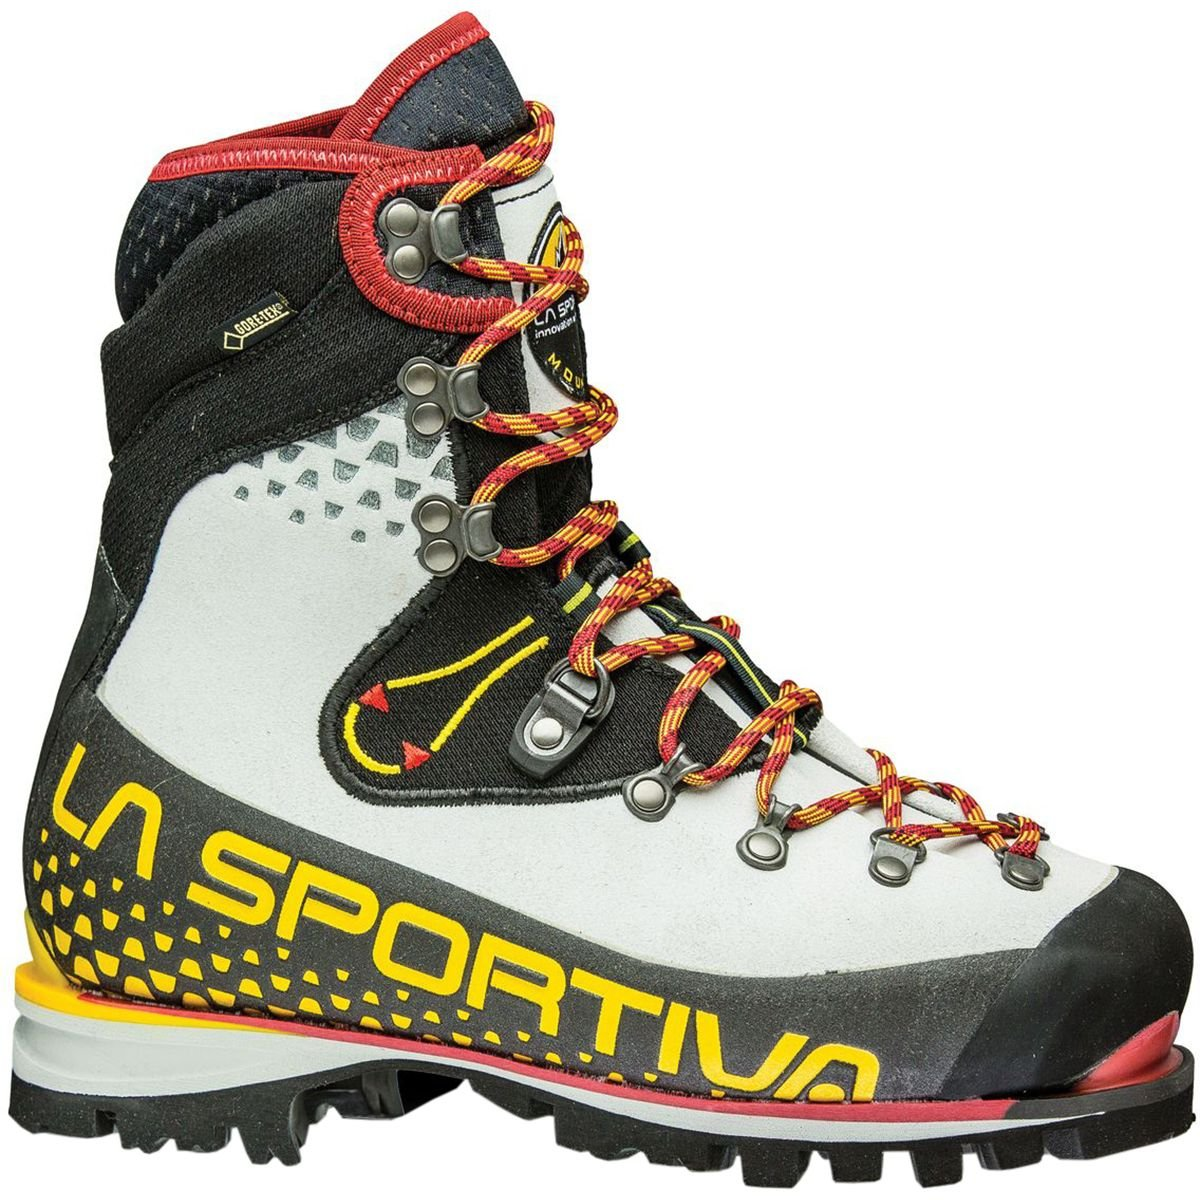 La Sportiva Nepal Cube GTX Mountaineering Boot - Women's Ice 42